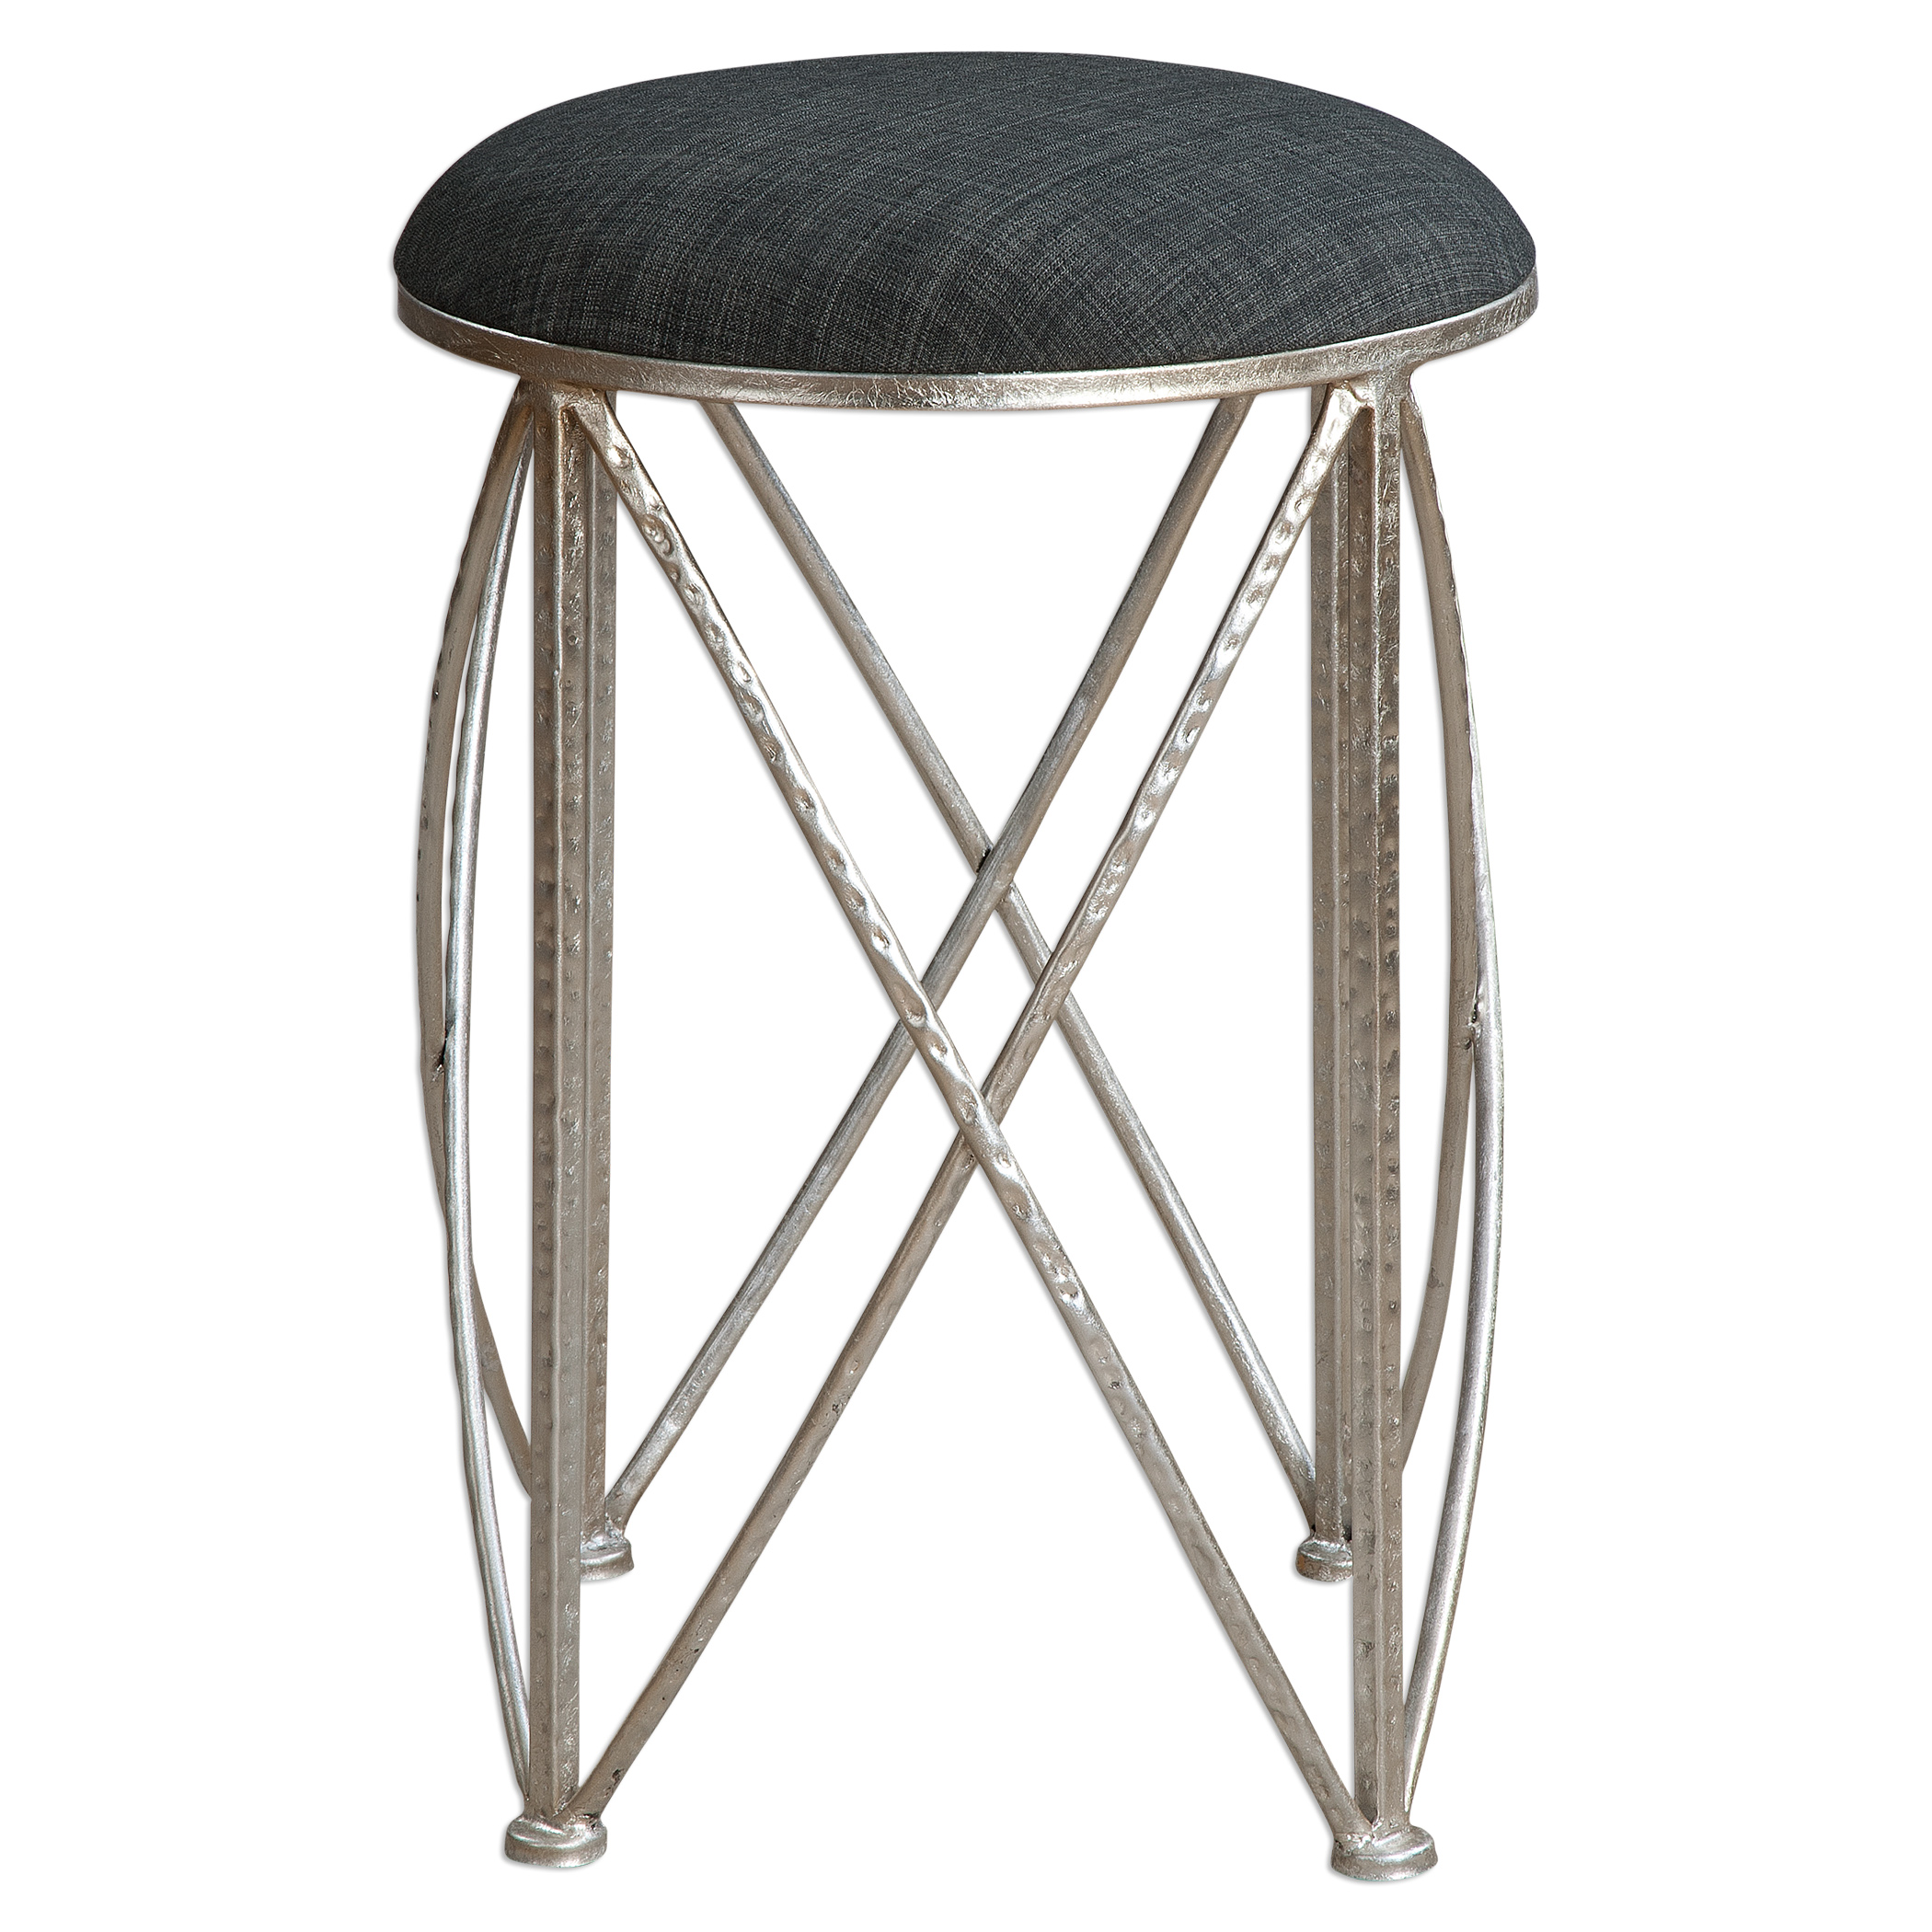 Uttermost Accent Furniture Delaine Silver Small Stool - Item Number: 23280